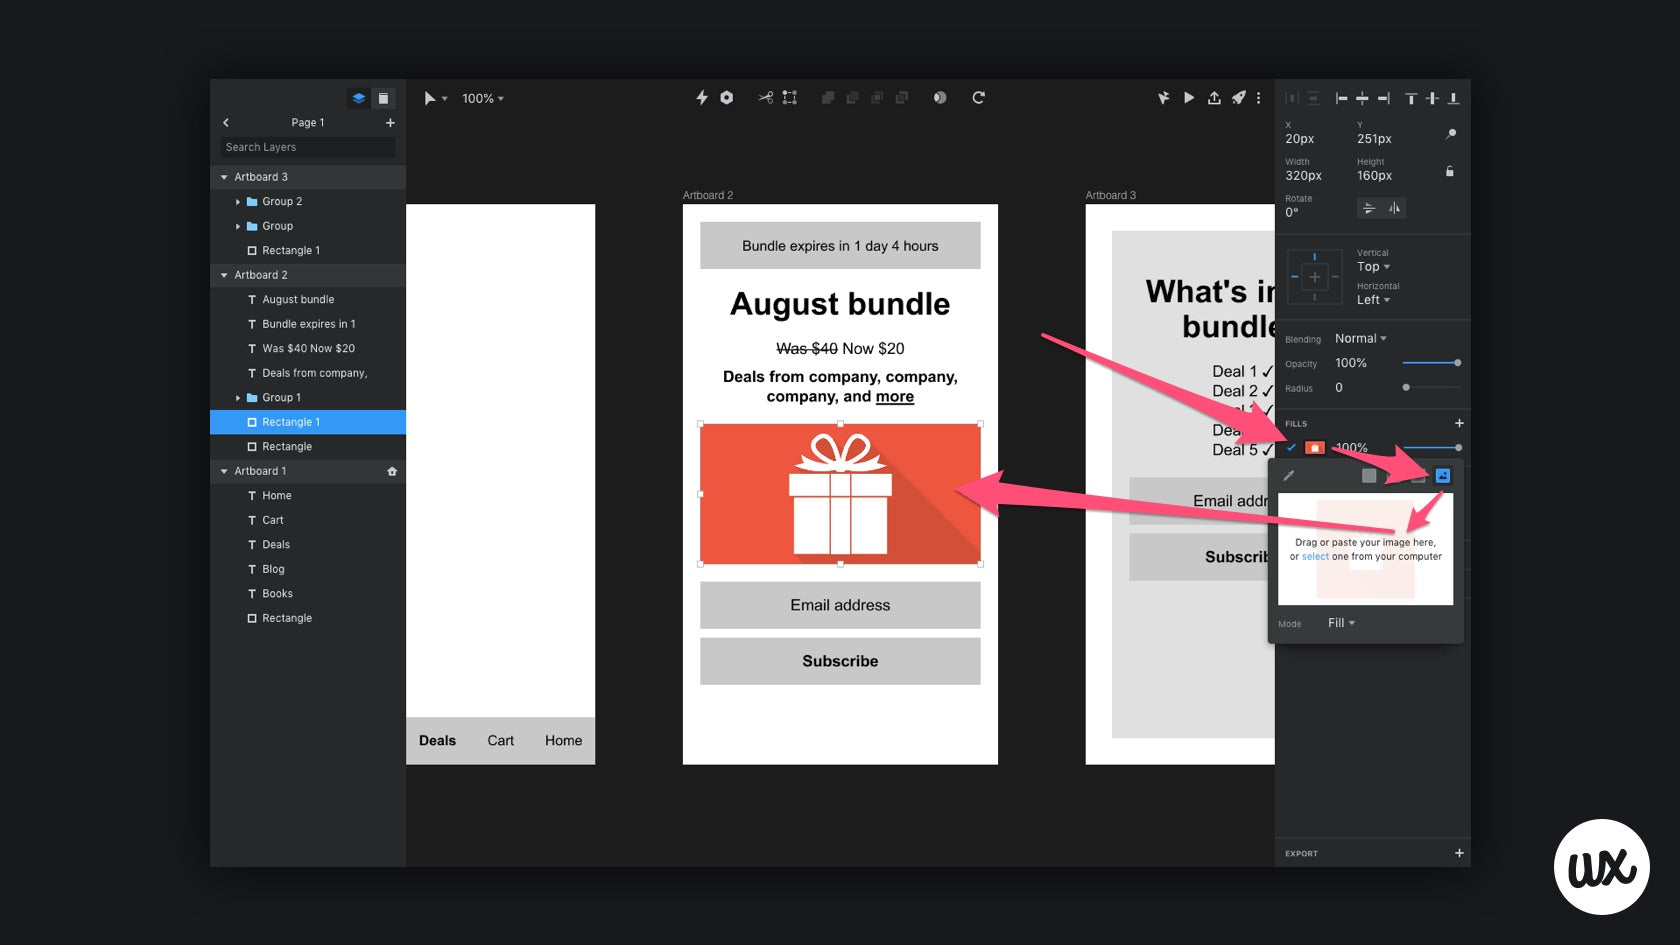 Importing images into InVision Studio